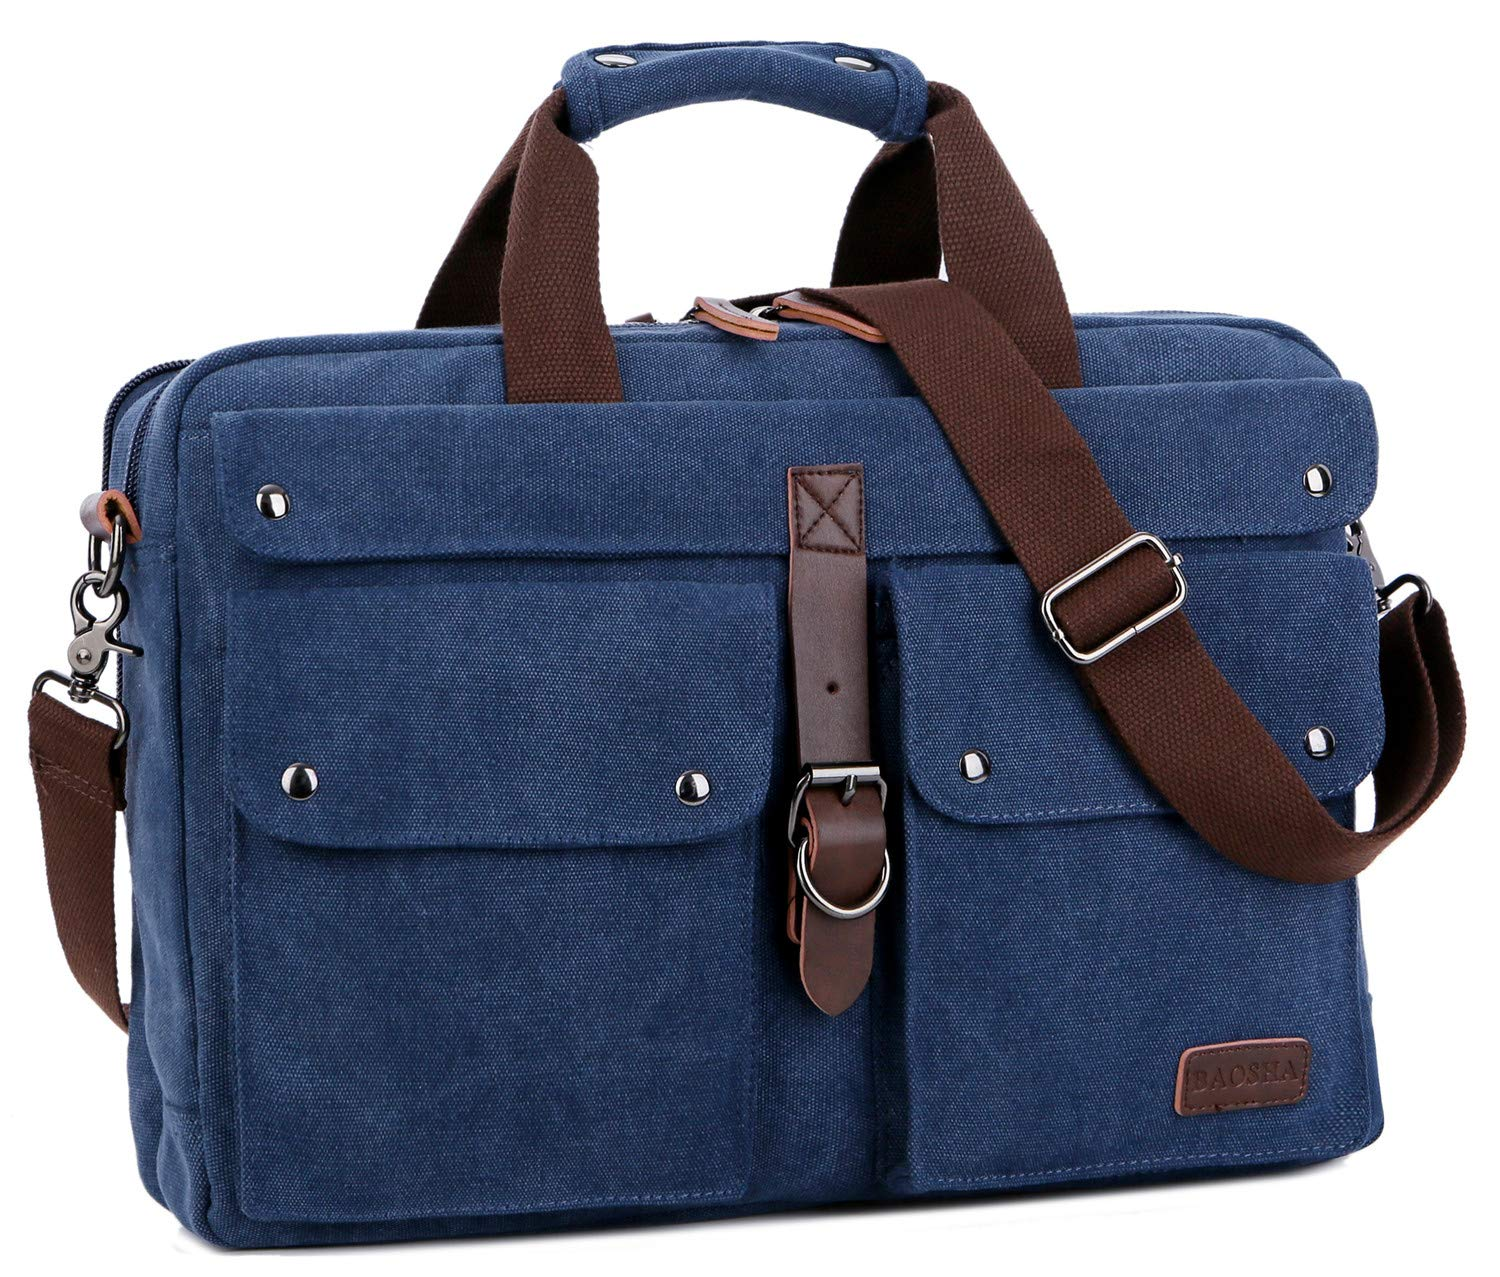 BAOSHA BC-07 17inch Canvas Laptop Computer Bag Messenger Bag Multicompartment Briefcase